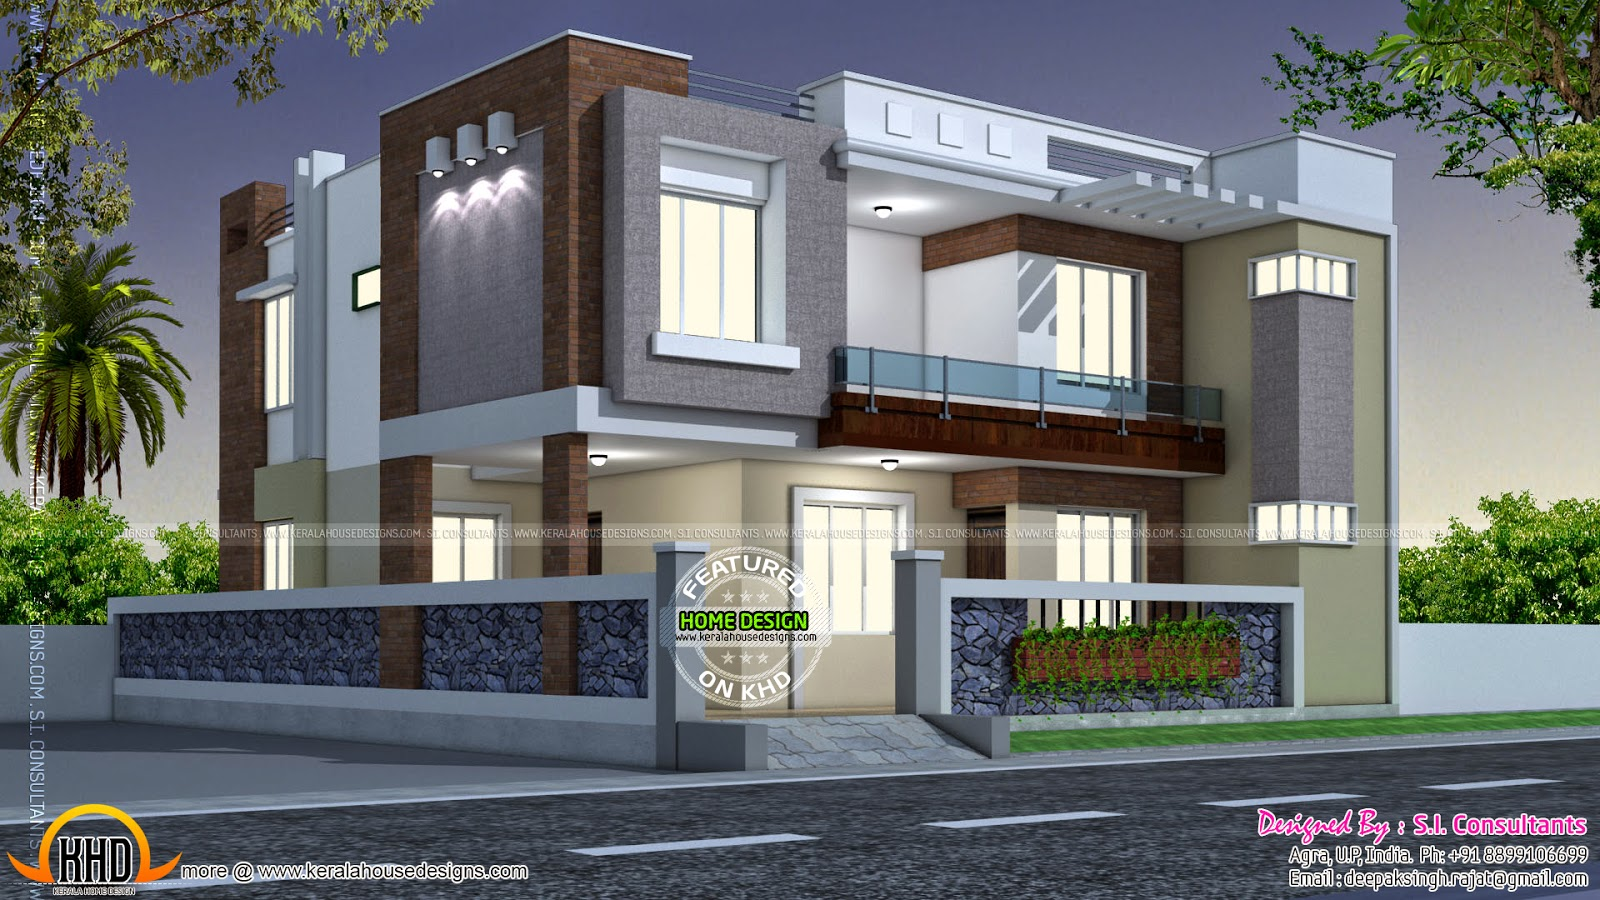 Modern style indian home kerala home design and floor plans for Indian home designs photos